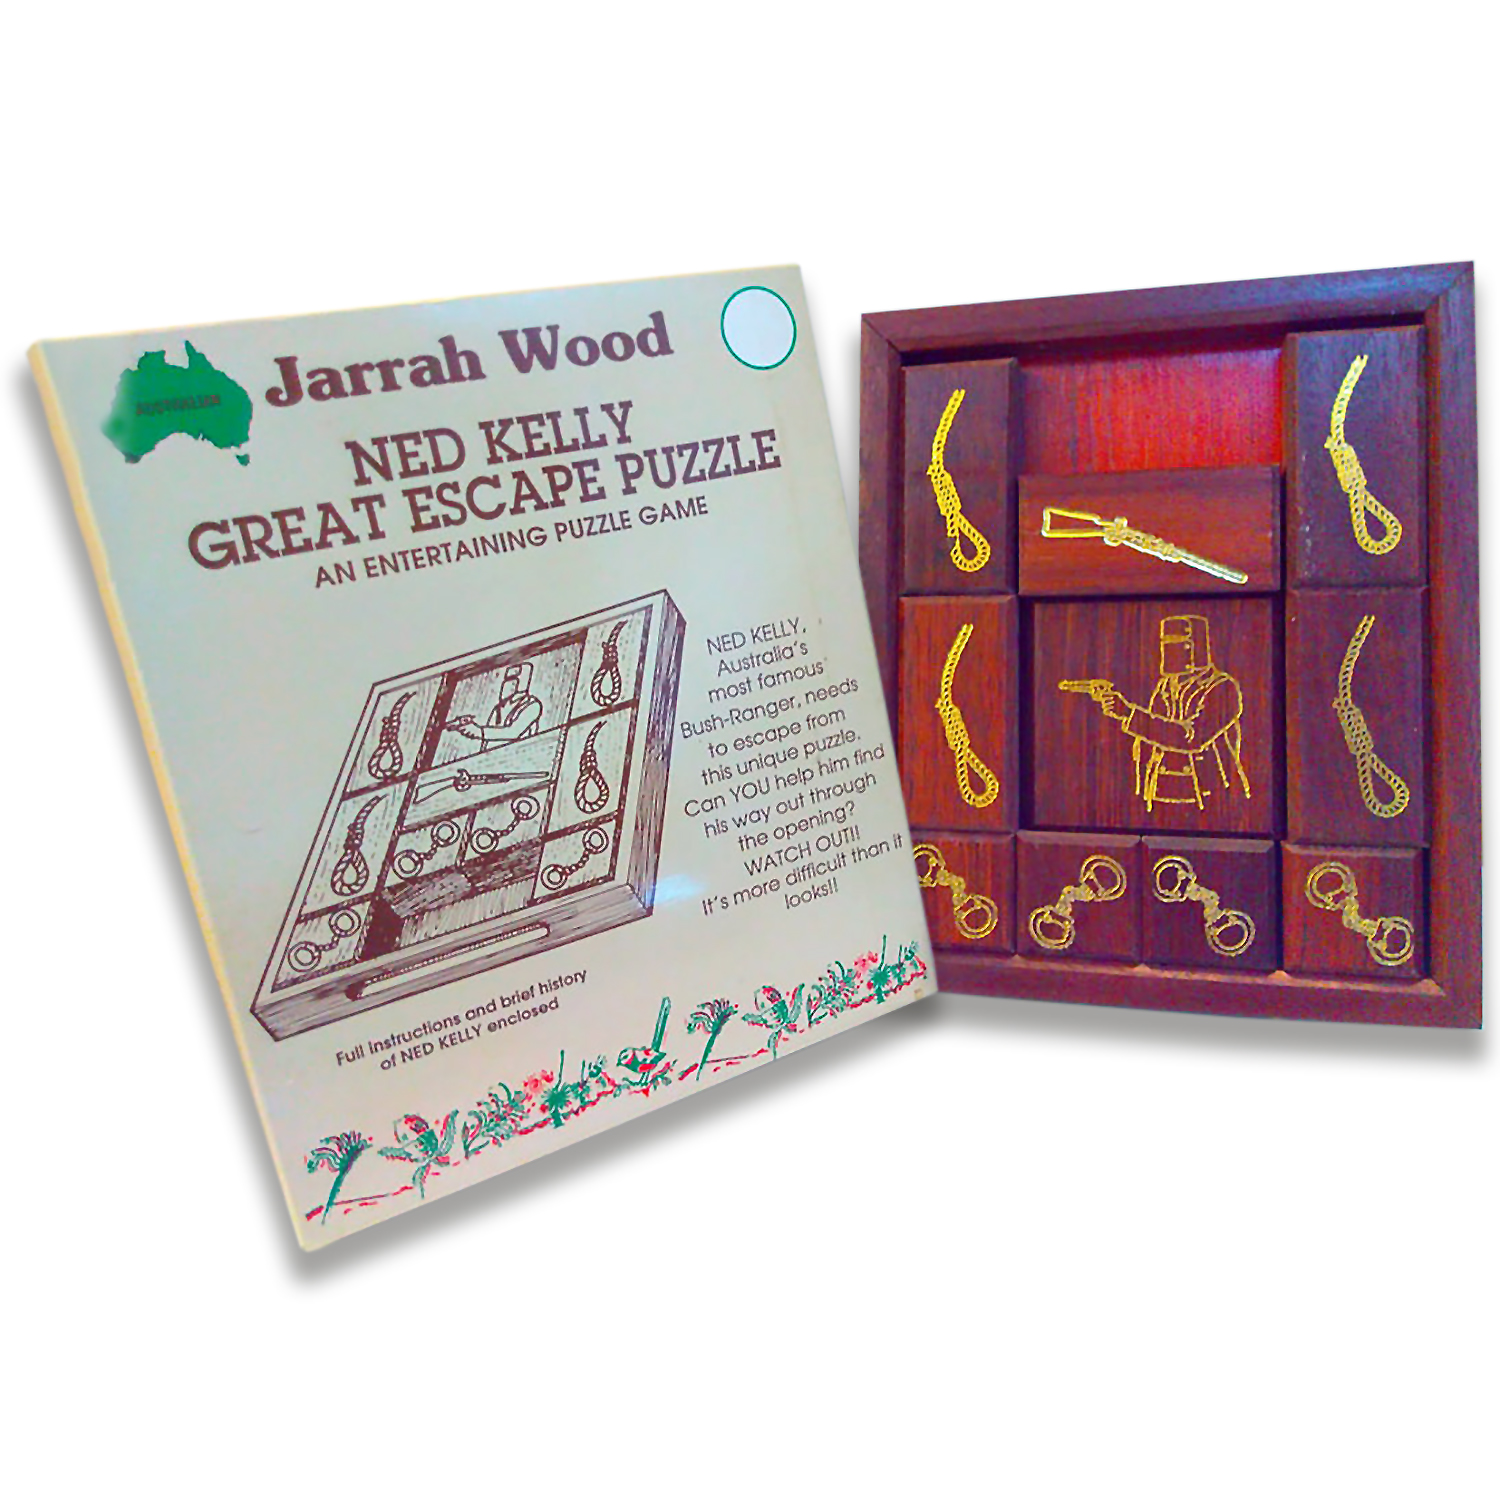 Ned Kelly Great Escape Puzzle